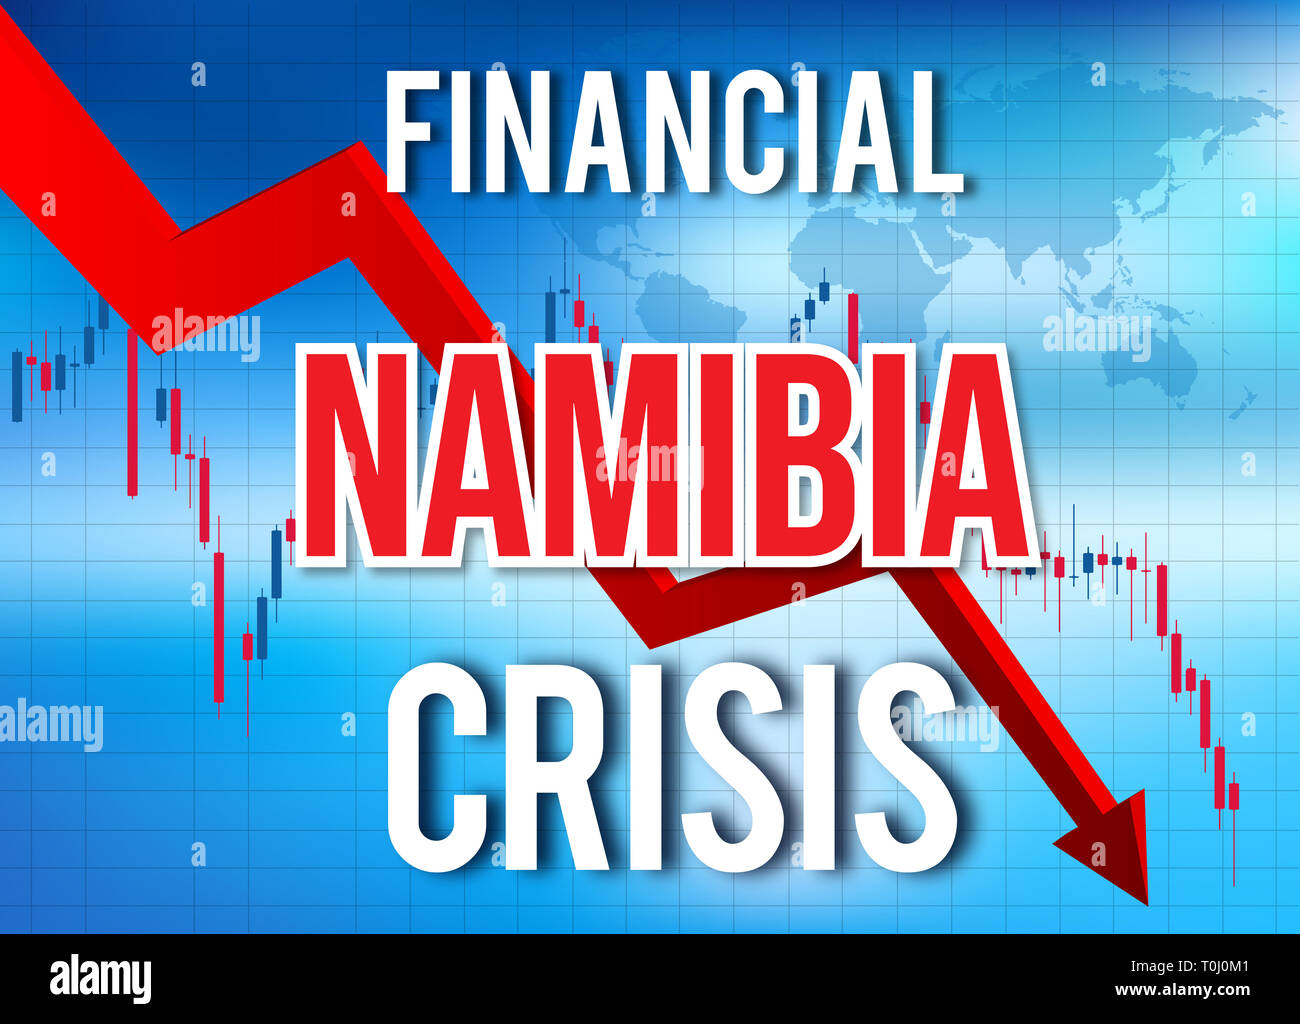 Namibia Financial Crisis Economic Collapse Market Crash Global Meltdown Illustration. - Stock Image